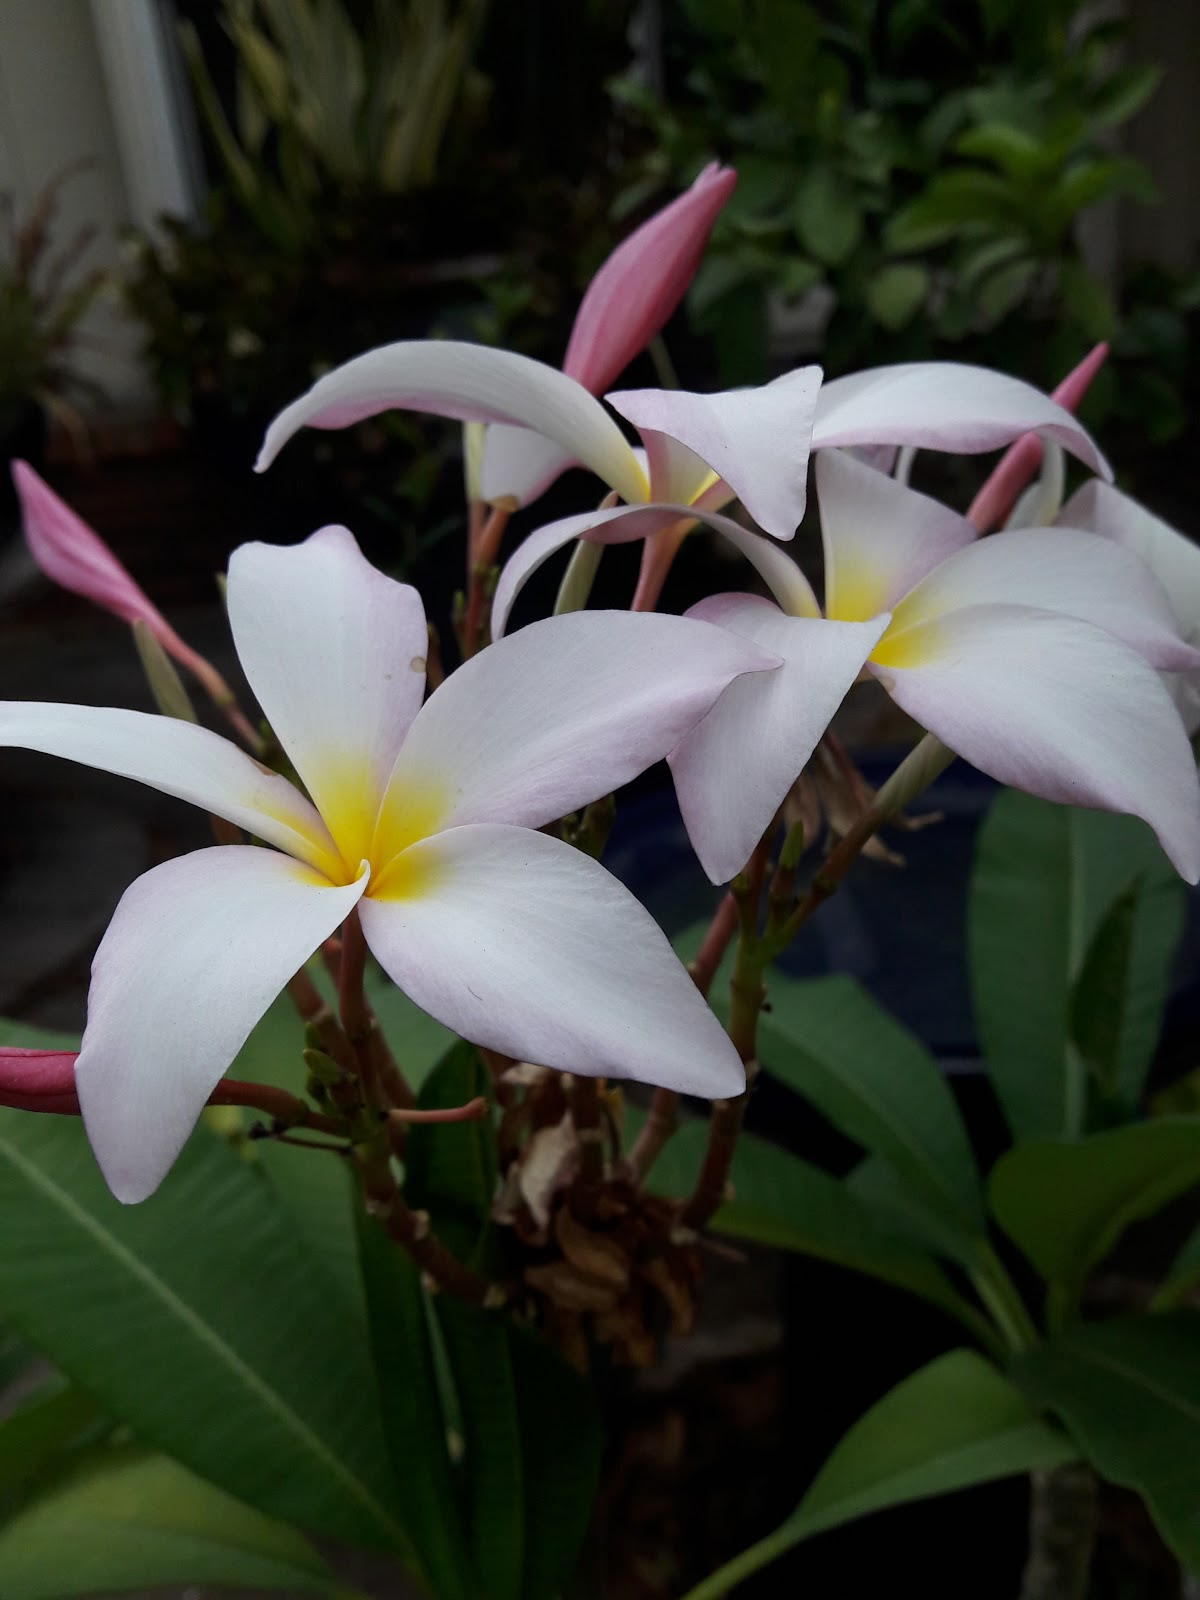 Garden bloggers bloom day august 2018 around the pool we really dont have many blooms the tropical garden is based around foliage but does have a few things the first is the pereskia izmirmasajfo